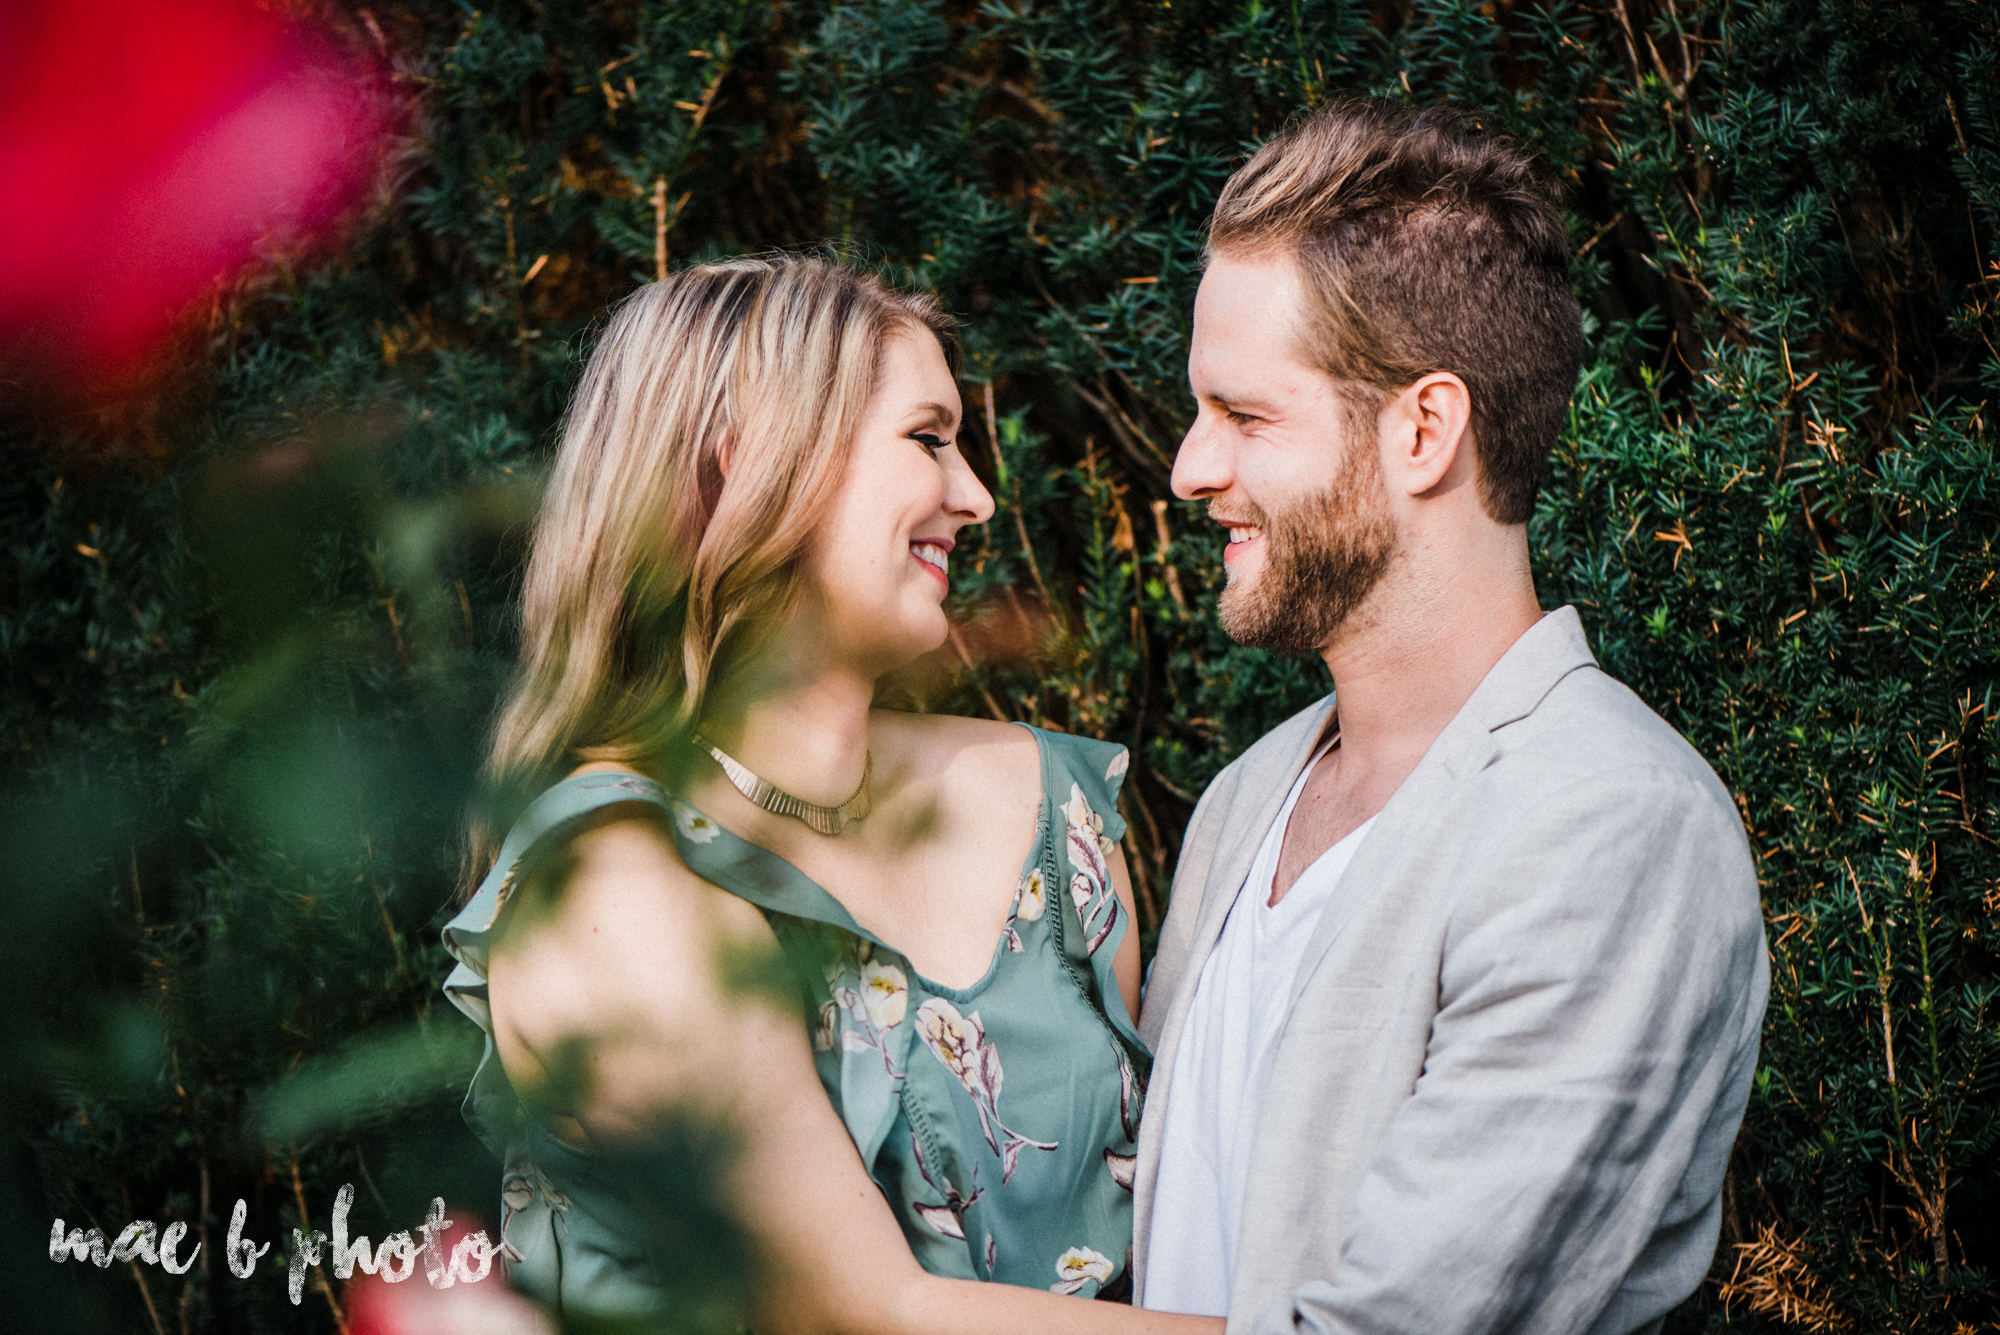 lauren and steve's summer engagement session at the rose gardens and lanterman's mill in mill creek park in youngstown ohio photographed by youngstown wedding photographer mae b photo-7.jpg